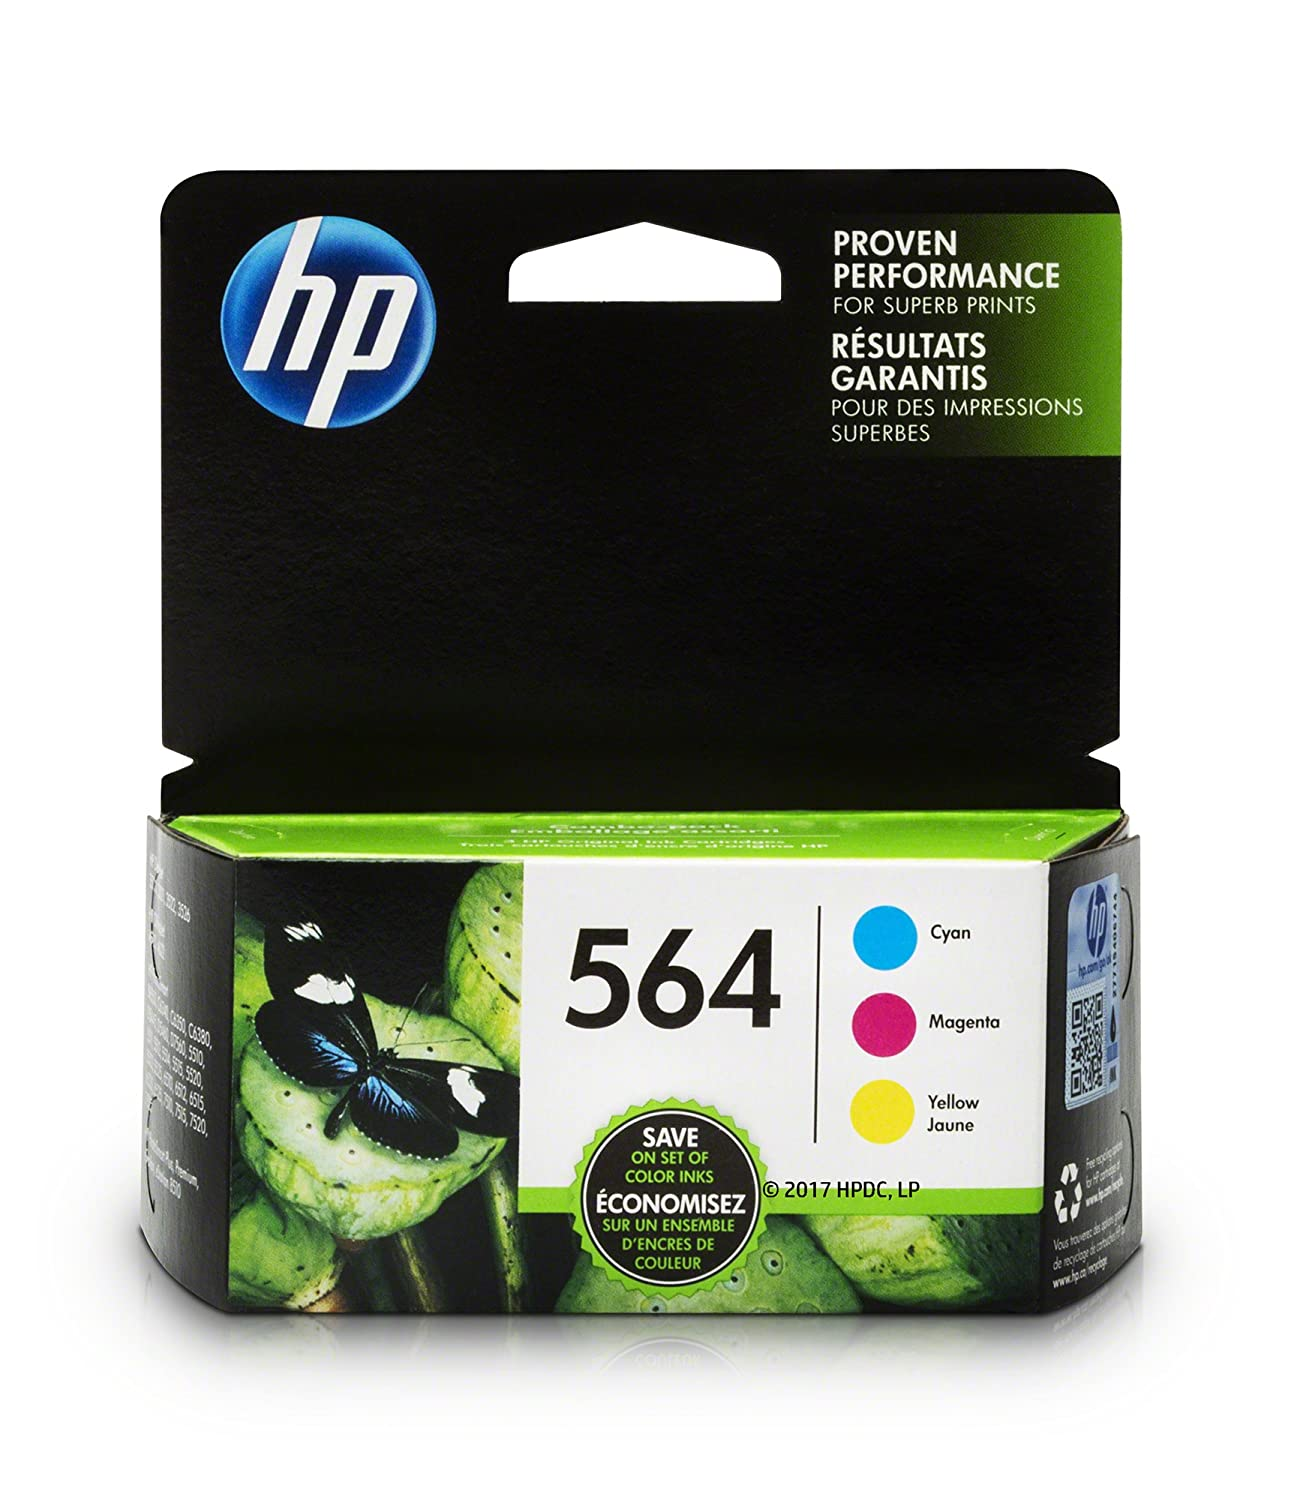 Magenta plus white how many tints can you create of the color magenta - Amazon Com Hp 564 Cyan Magenta Yellow Original Ink Cartridges 3 Cartridges N9h57fn Office Products